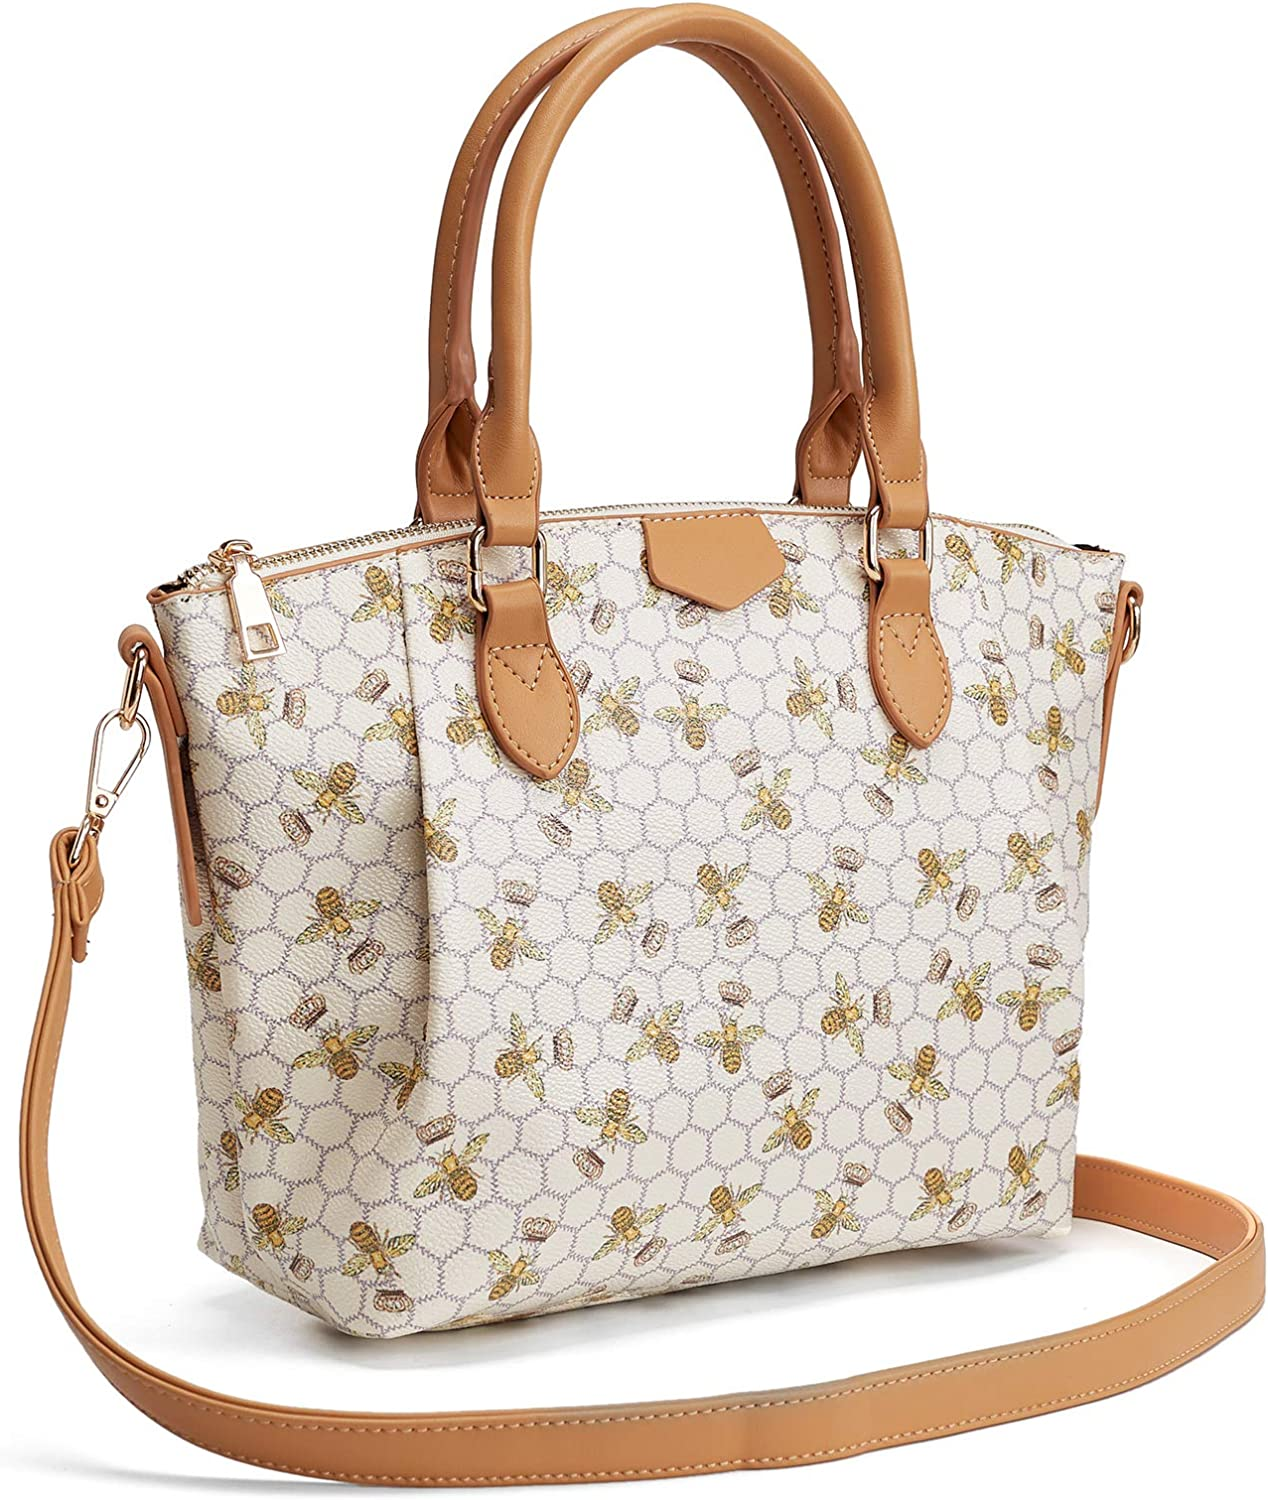 Handbags for Women Top Handble Purse with Large inner Pockets and Detachable Shoulder Strap